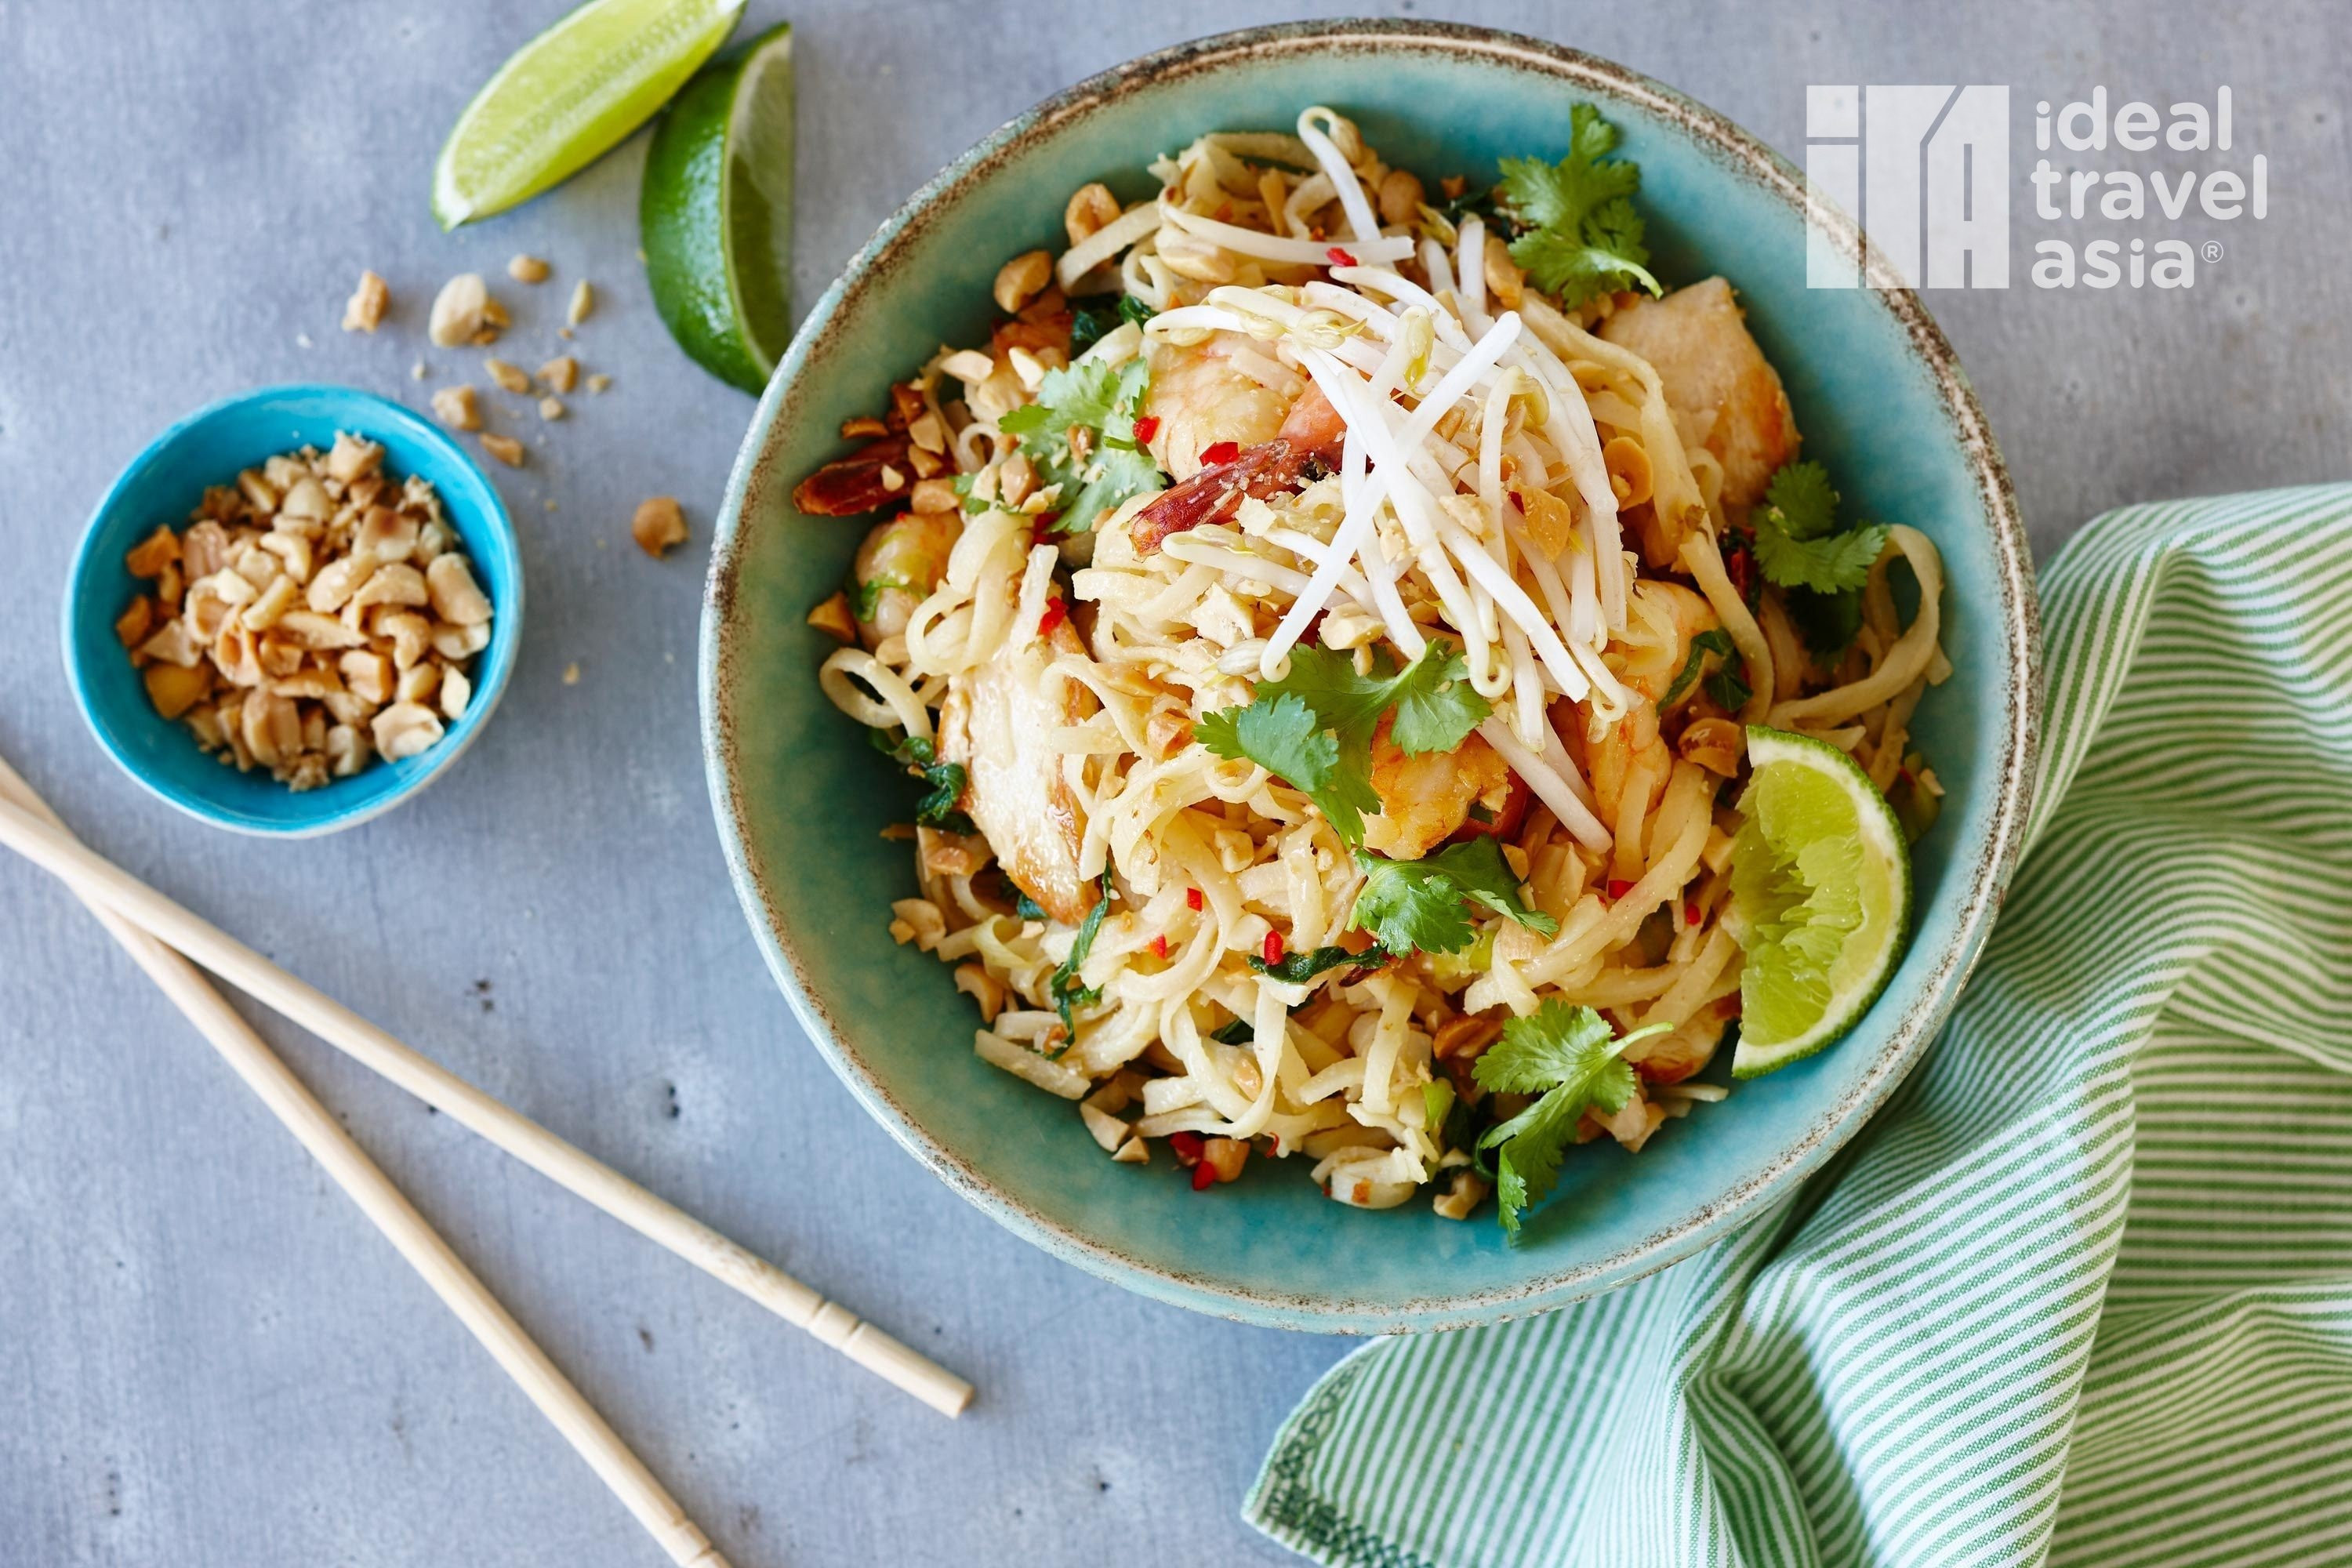 Best Pad Thai  TOP MUST TRY DISHES IN BANGKOK EN To travel is to live